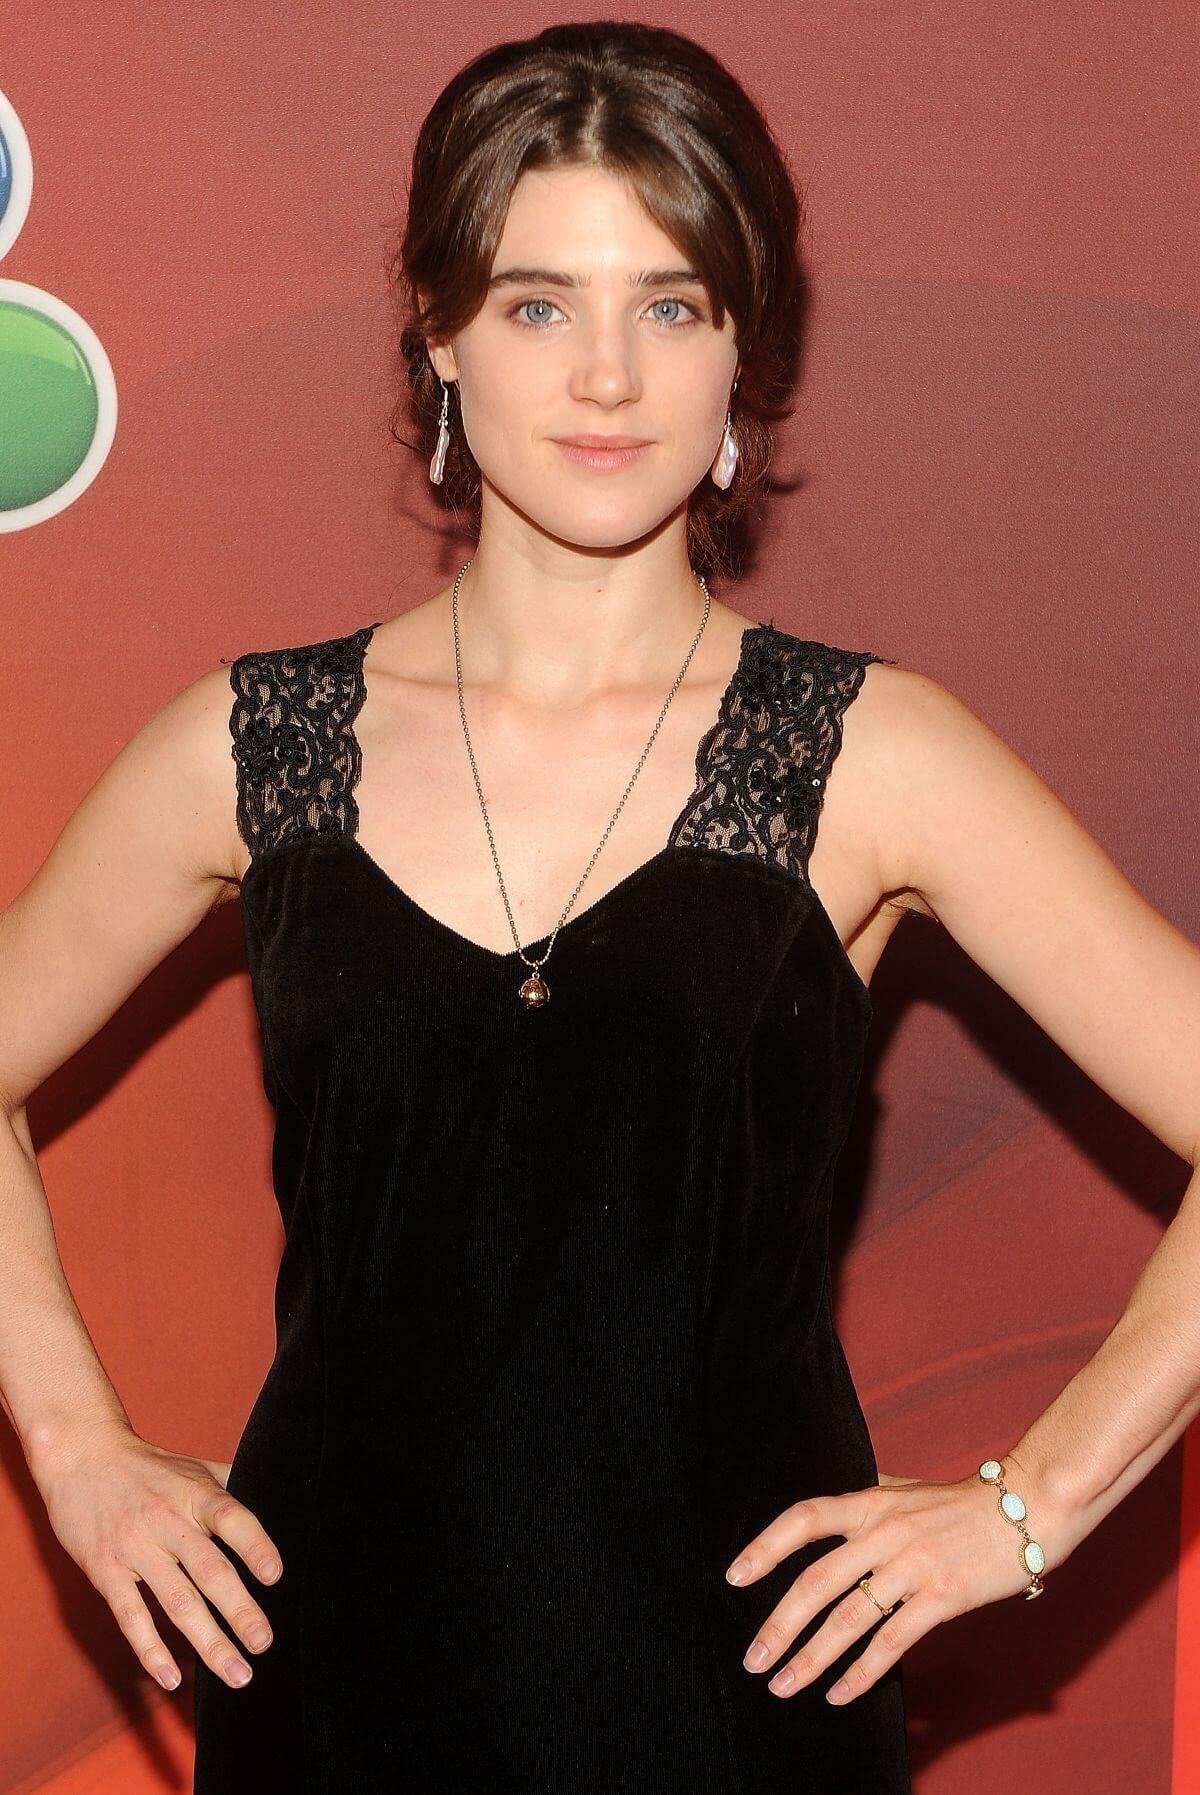 49 Hot Pictures Of Lucy Griffiths Which Expose Her Sexy